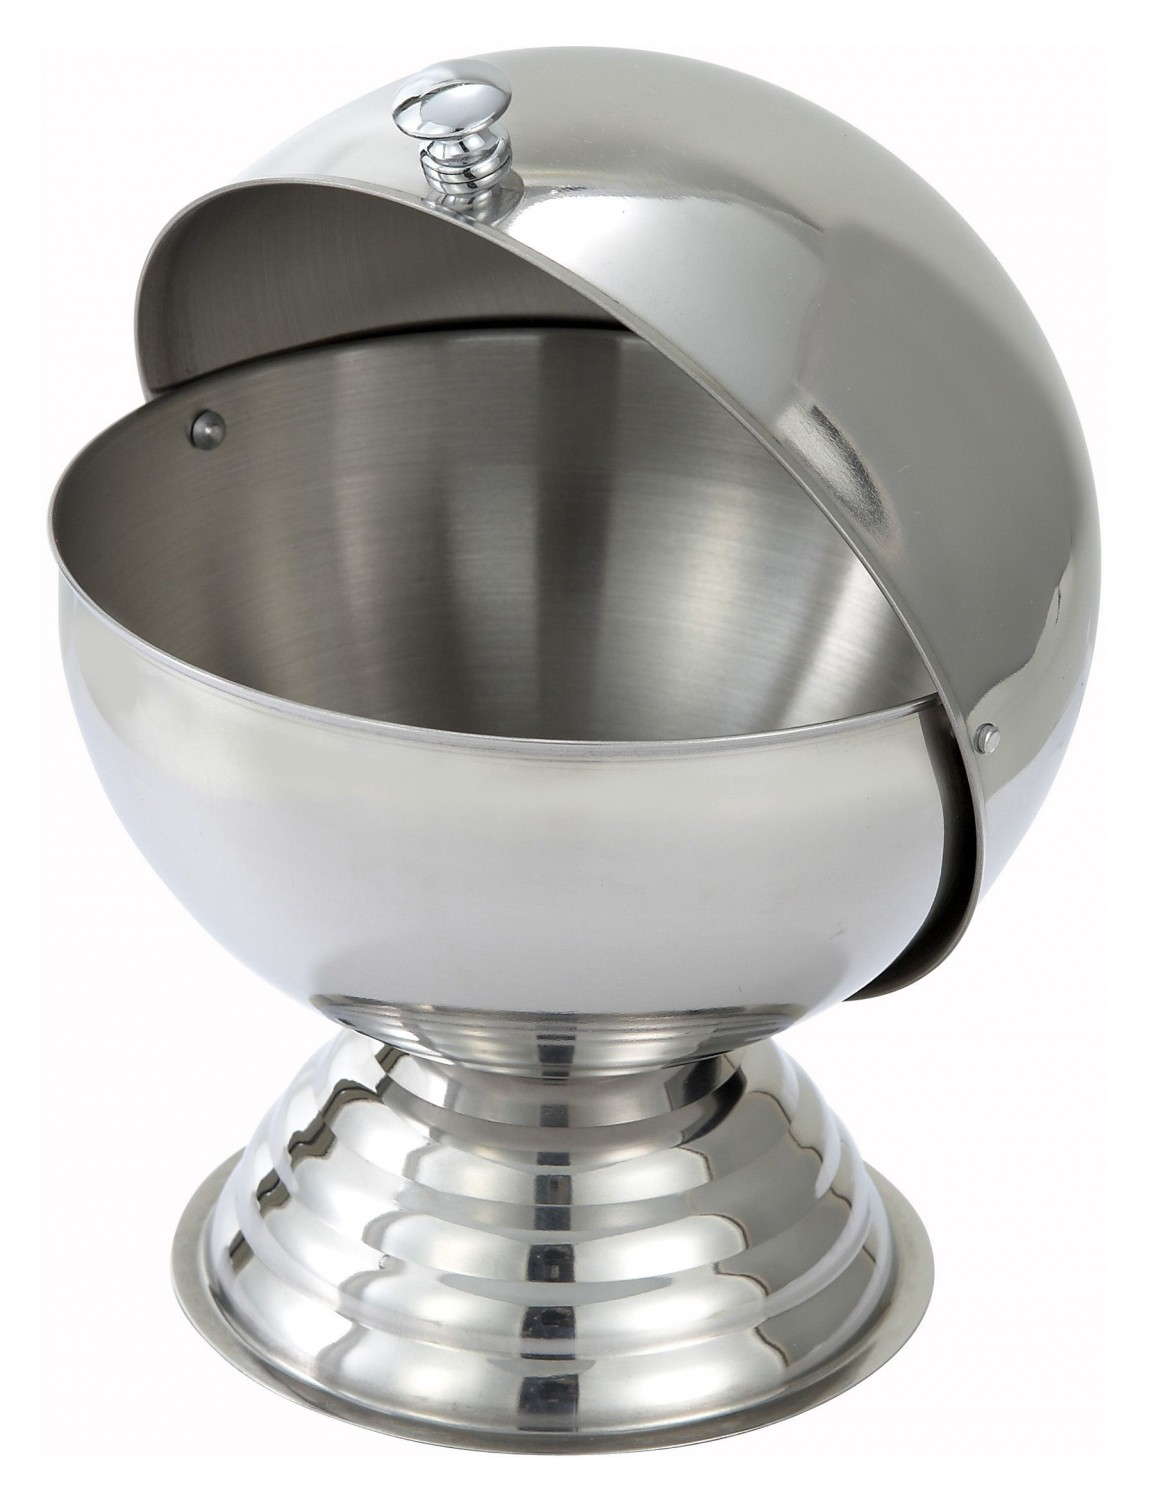 Winco SBR-30 Stainless Steel Sugar Bowl with Roll Top Lid 20 oz .